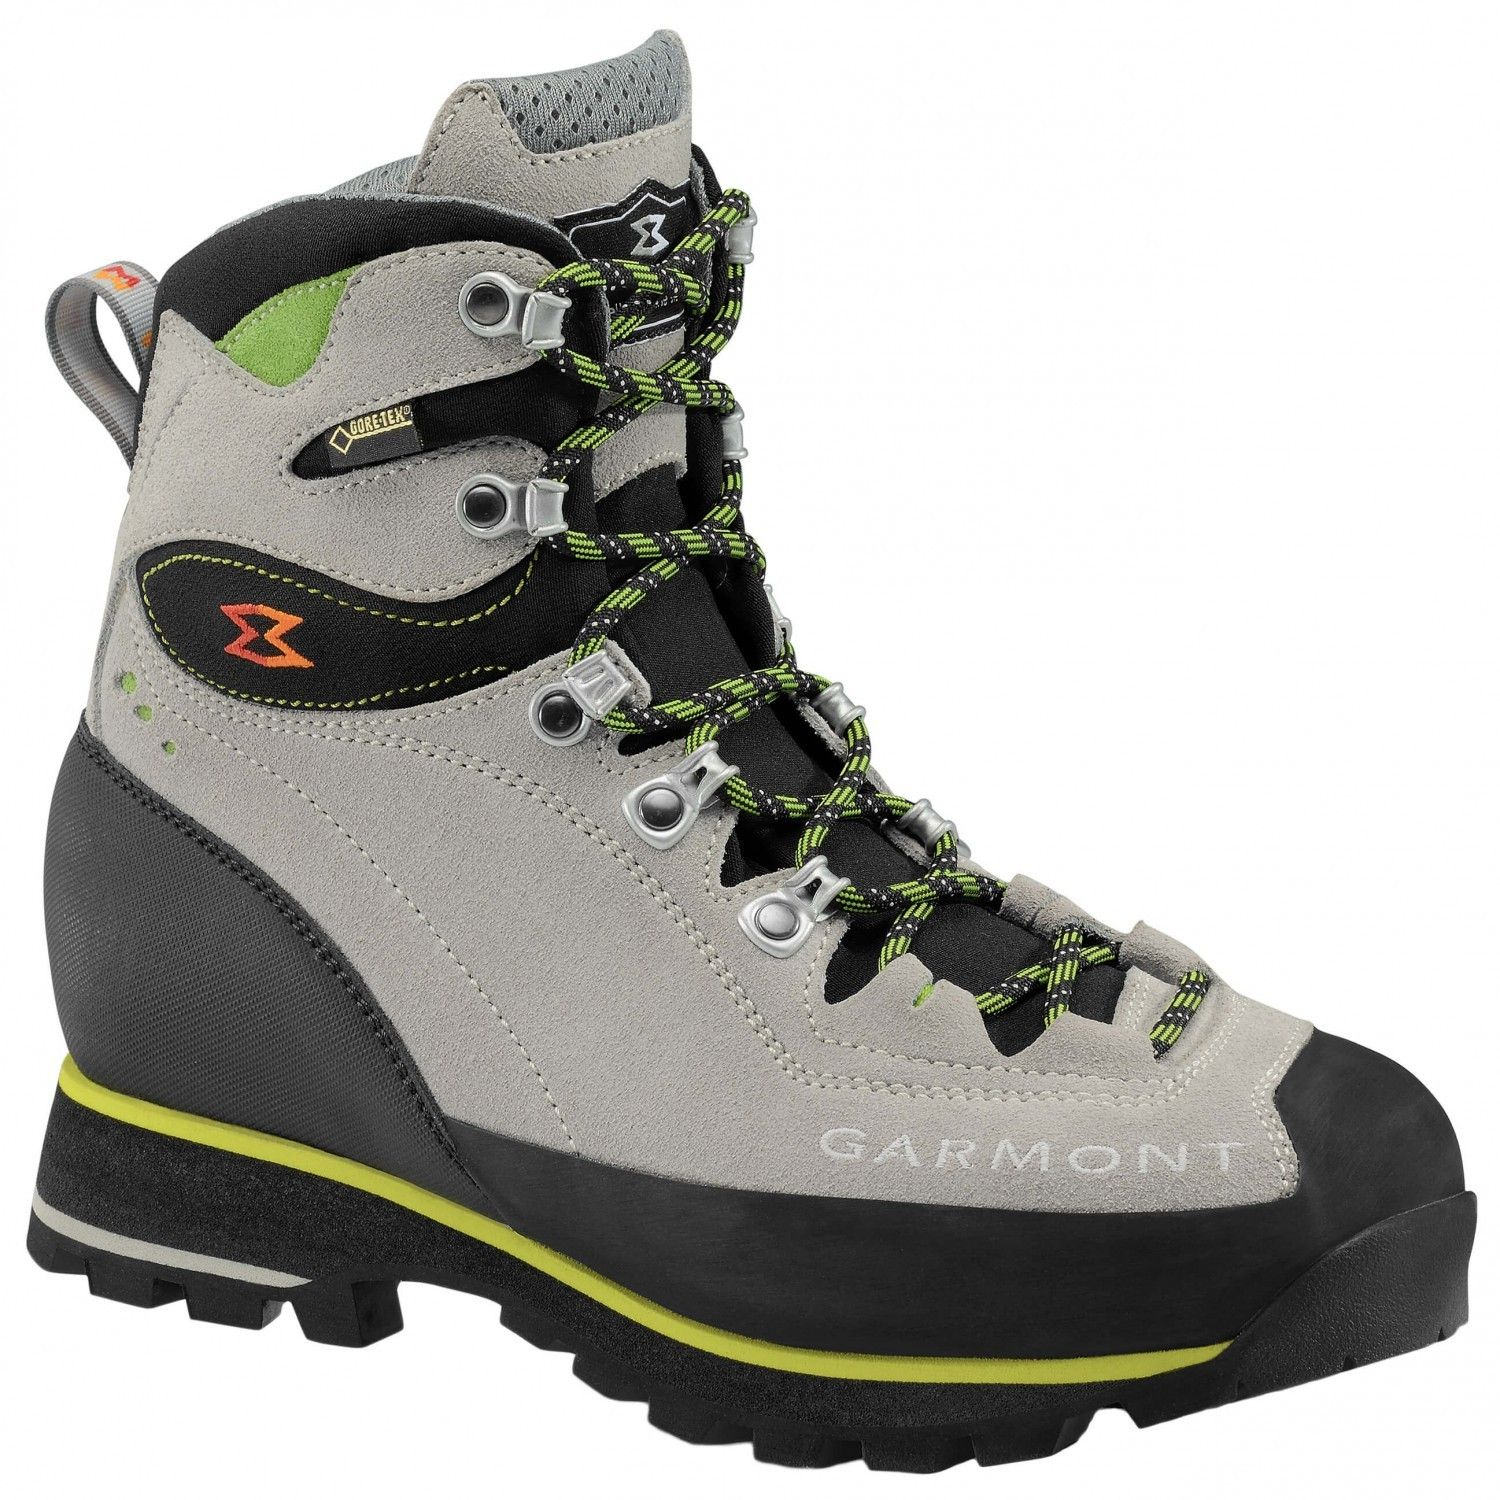 GARMONT TOWER TREK GTX